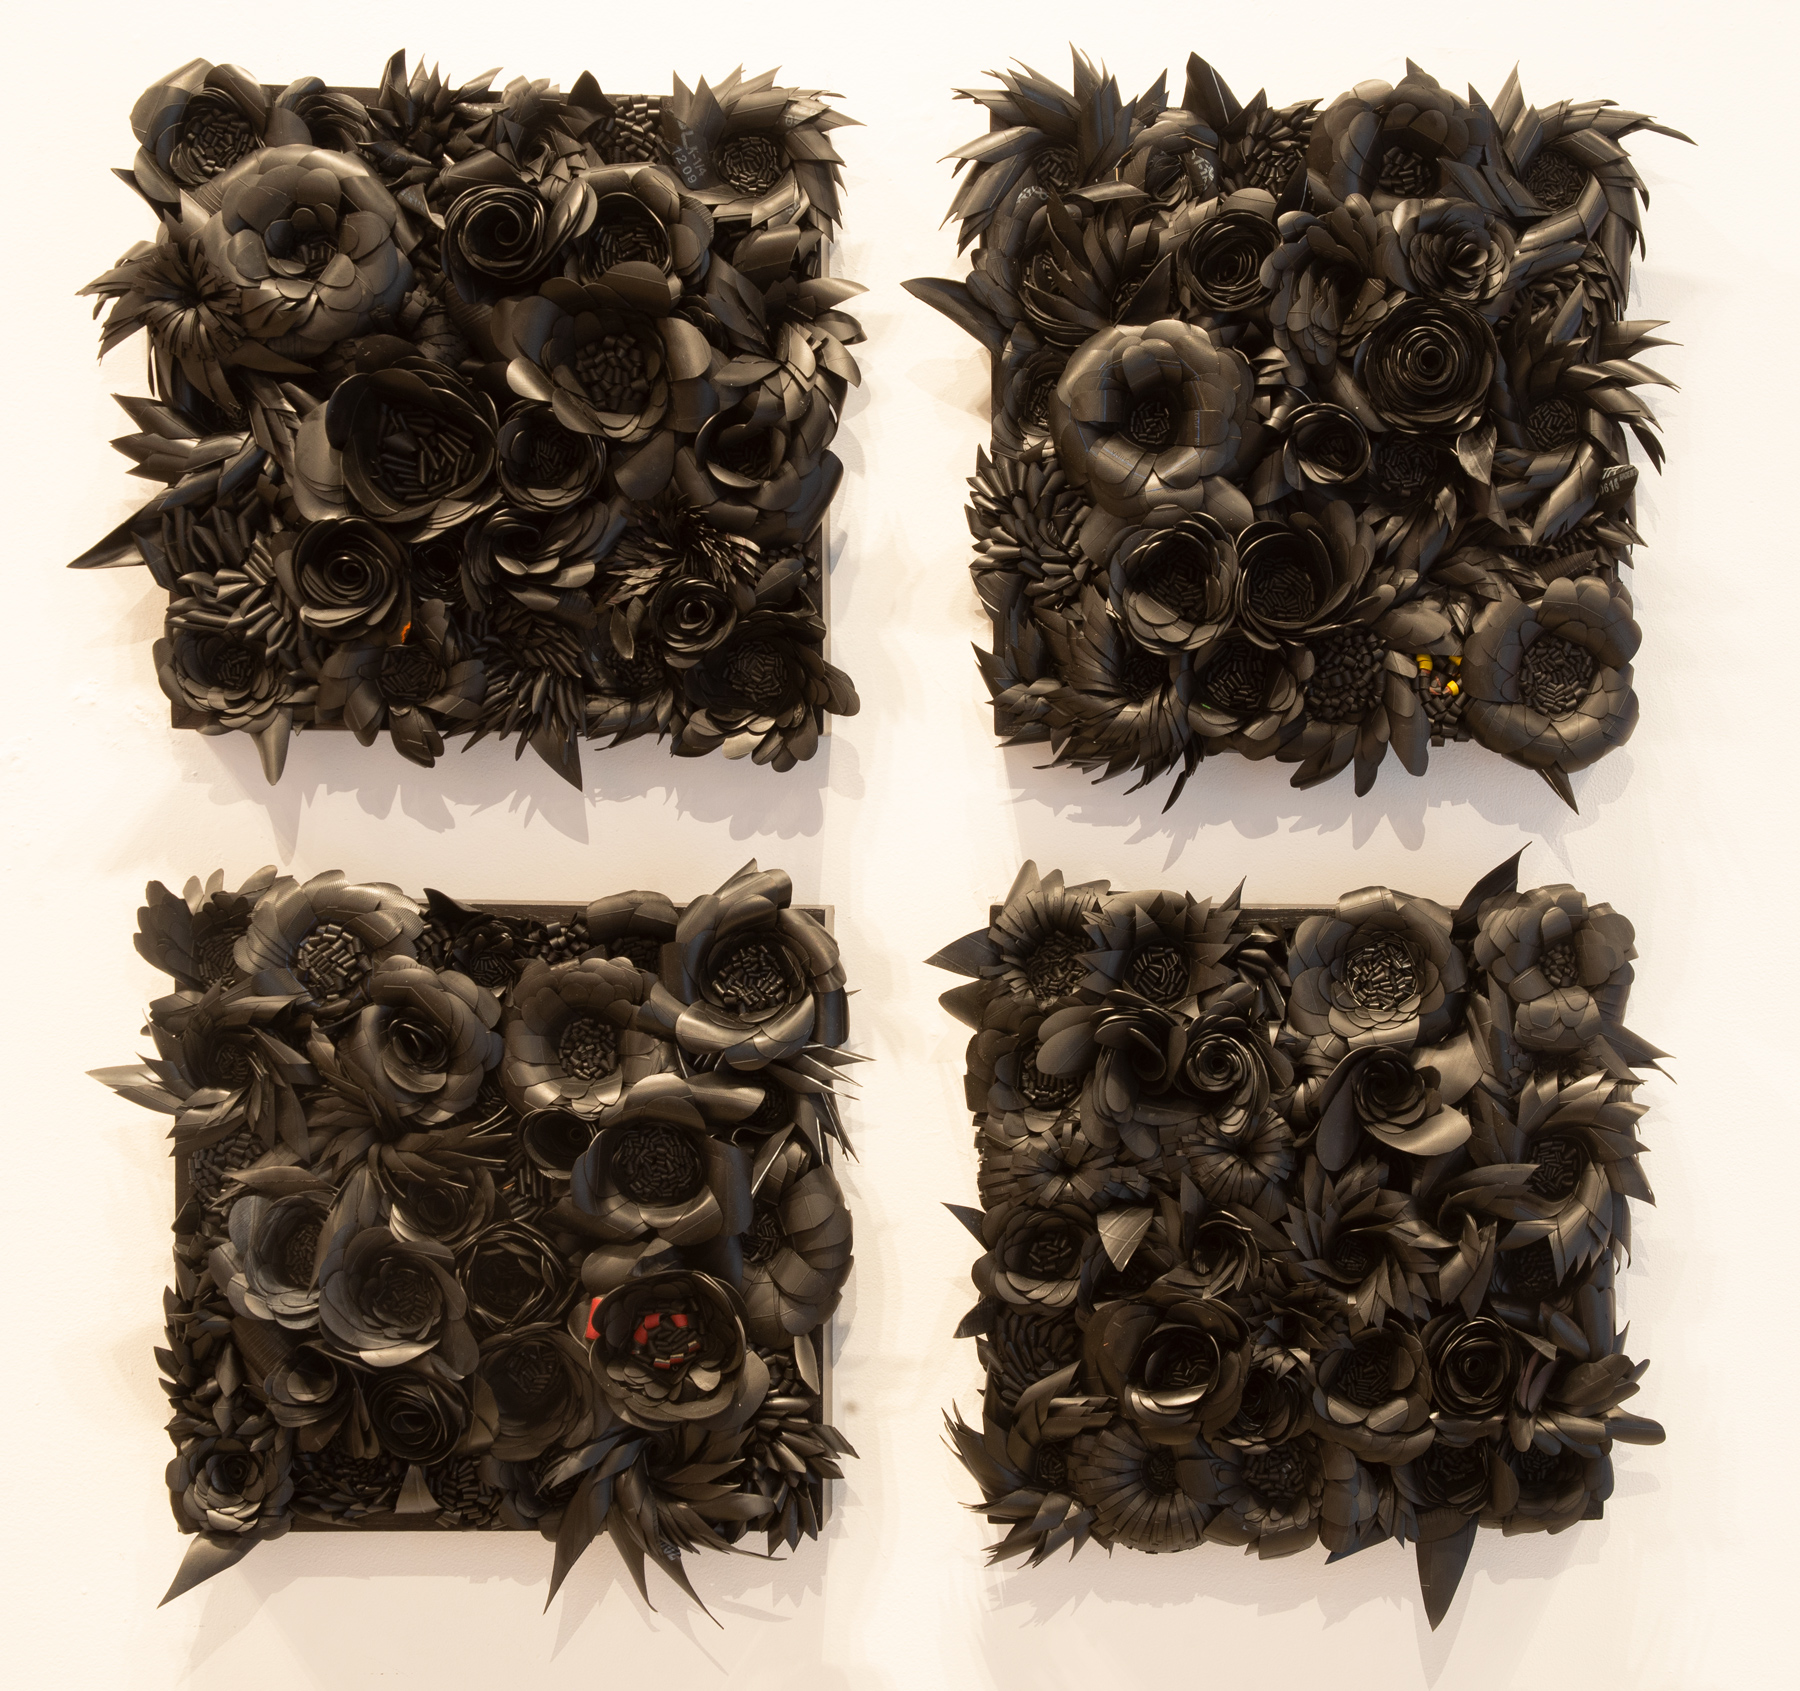 (4) Rubber Gardens (15x15), 2019  Post-consumer bicycle tubes in wood frame